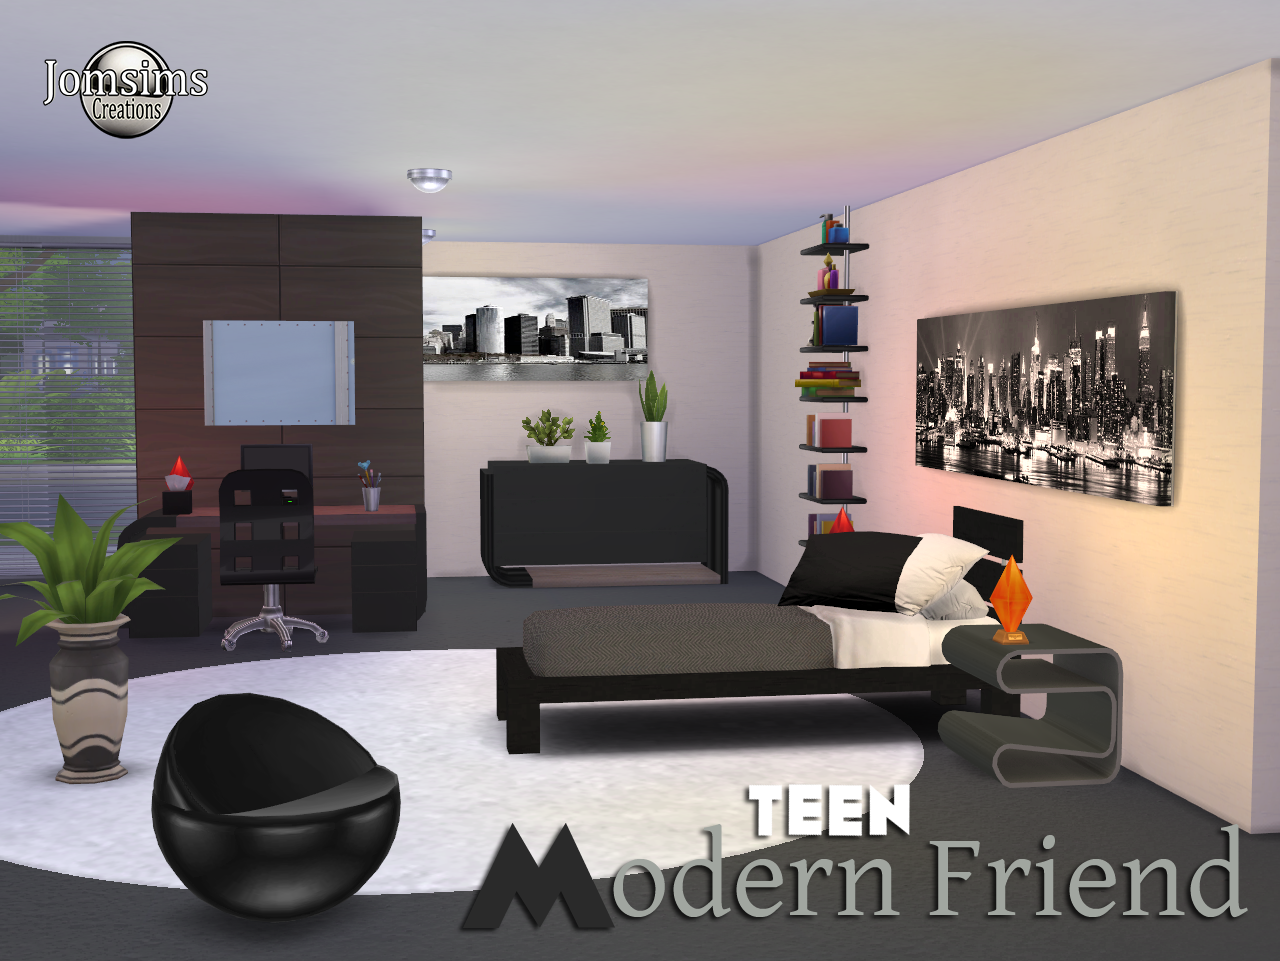 Jomsimscreations blog hello friends a new bedroom sims 4 for Bedroom designs sims 4